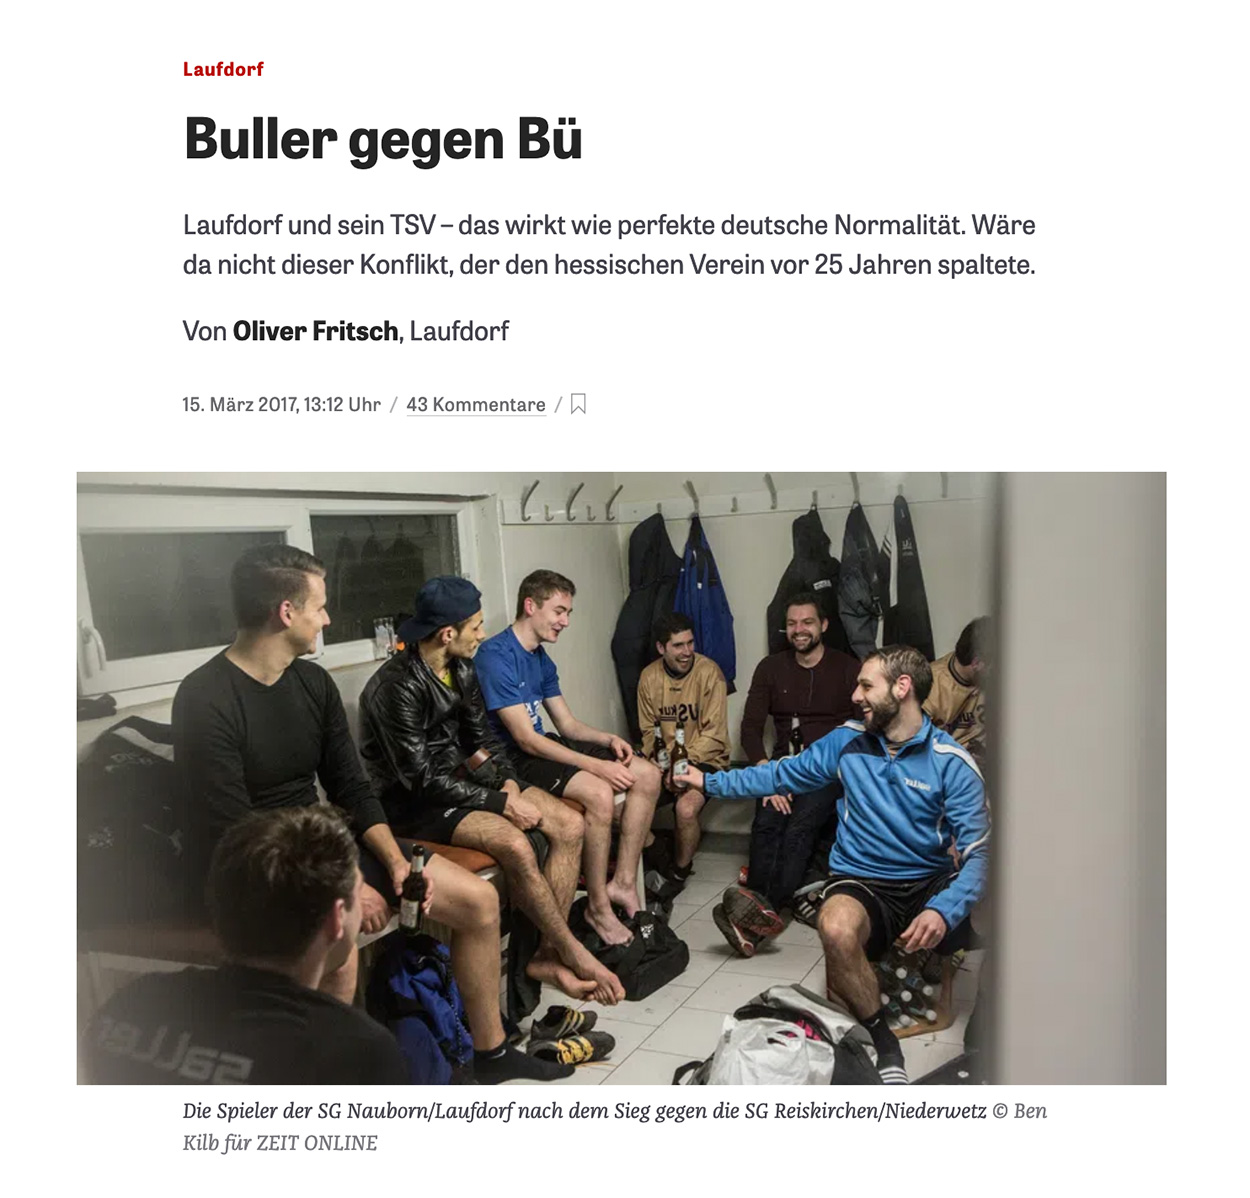 Football players of SG Nauborn/Laufdorf are celebrating and drinking beer inside their dressing room after they won a match